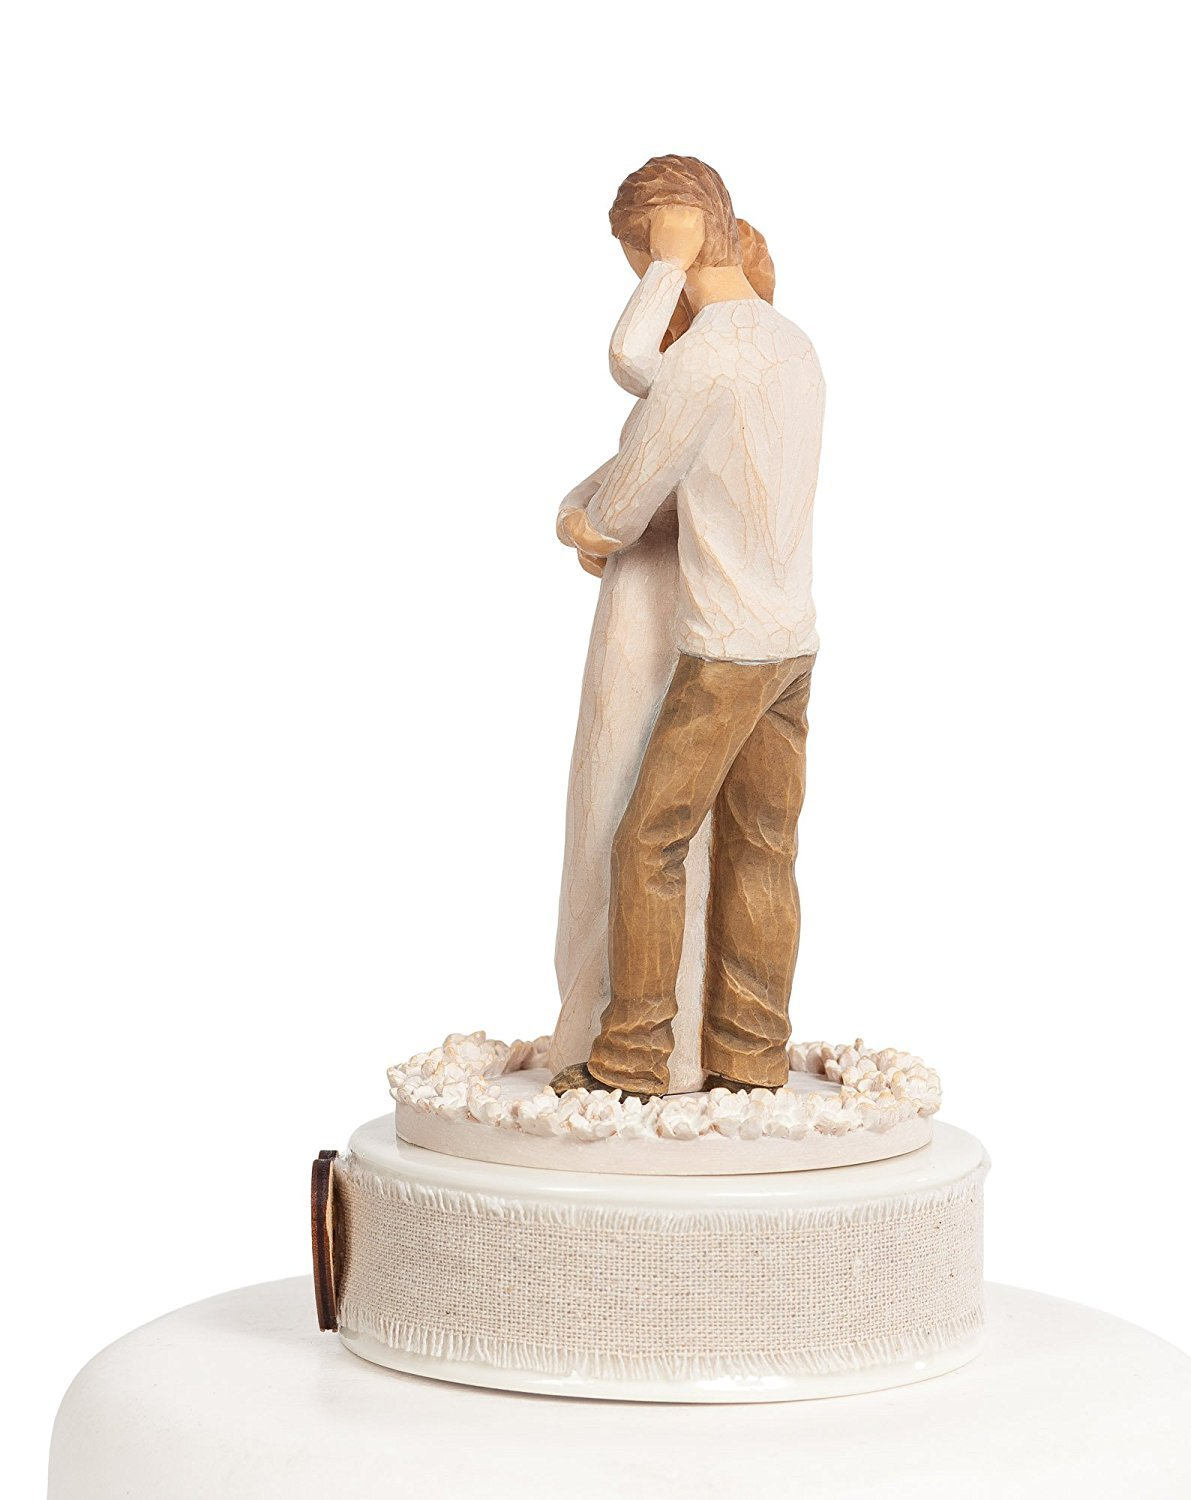 Personalized Willow Tree ''Together'' Wedding Cake Topper ... by DEMDACO - Home (Image #3)